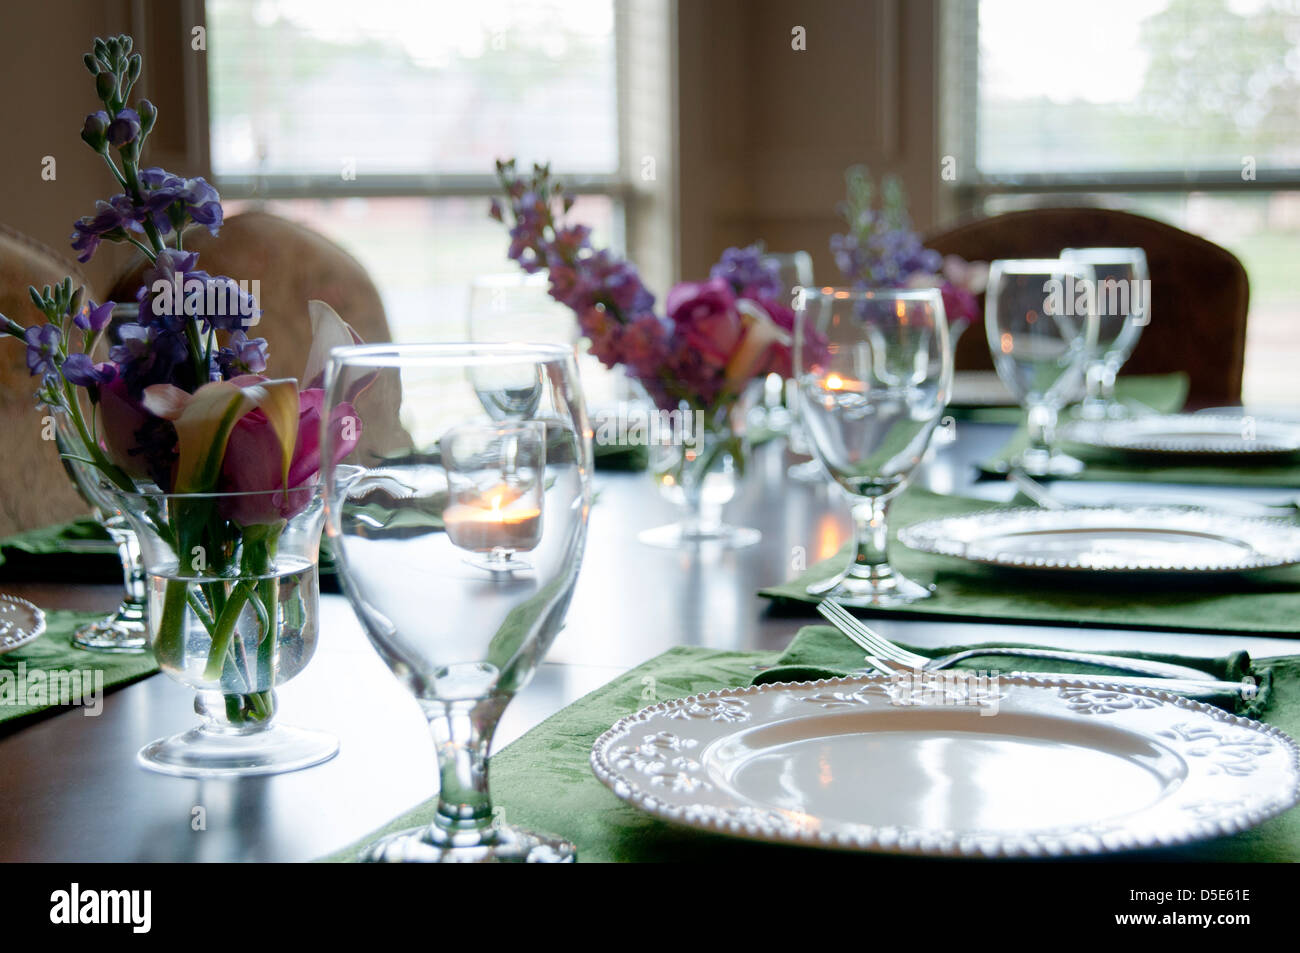 Setting A Dinner Table Residential Dinner Table Setting With Spring Flower Arrangements